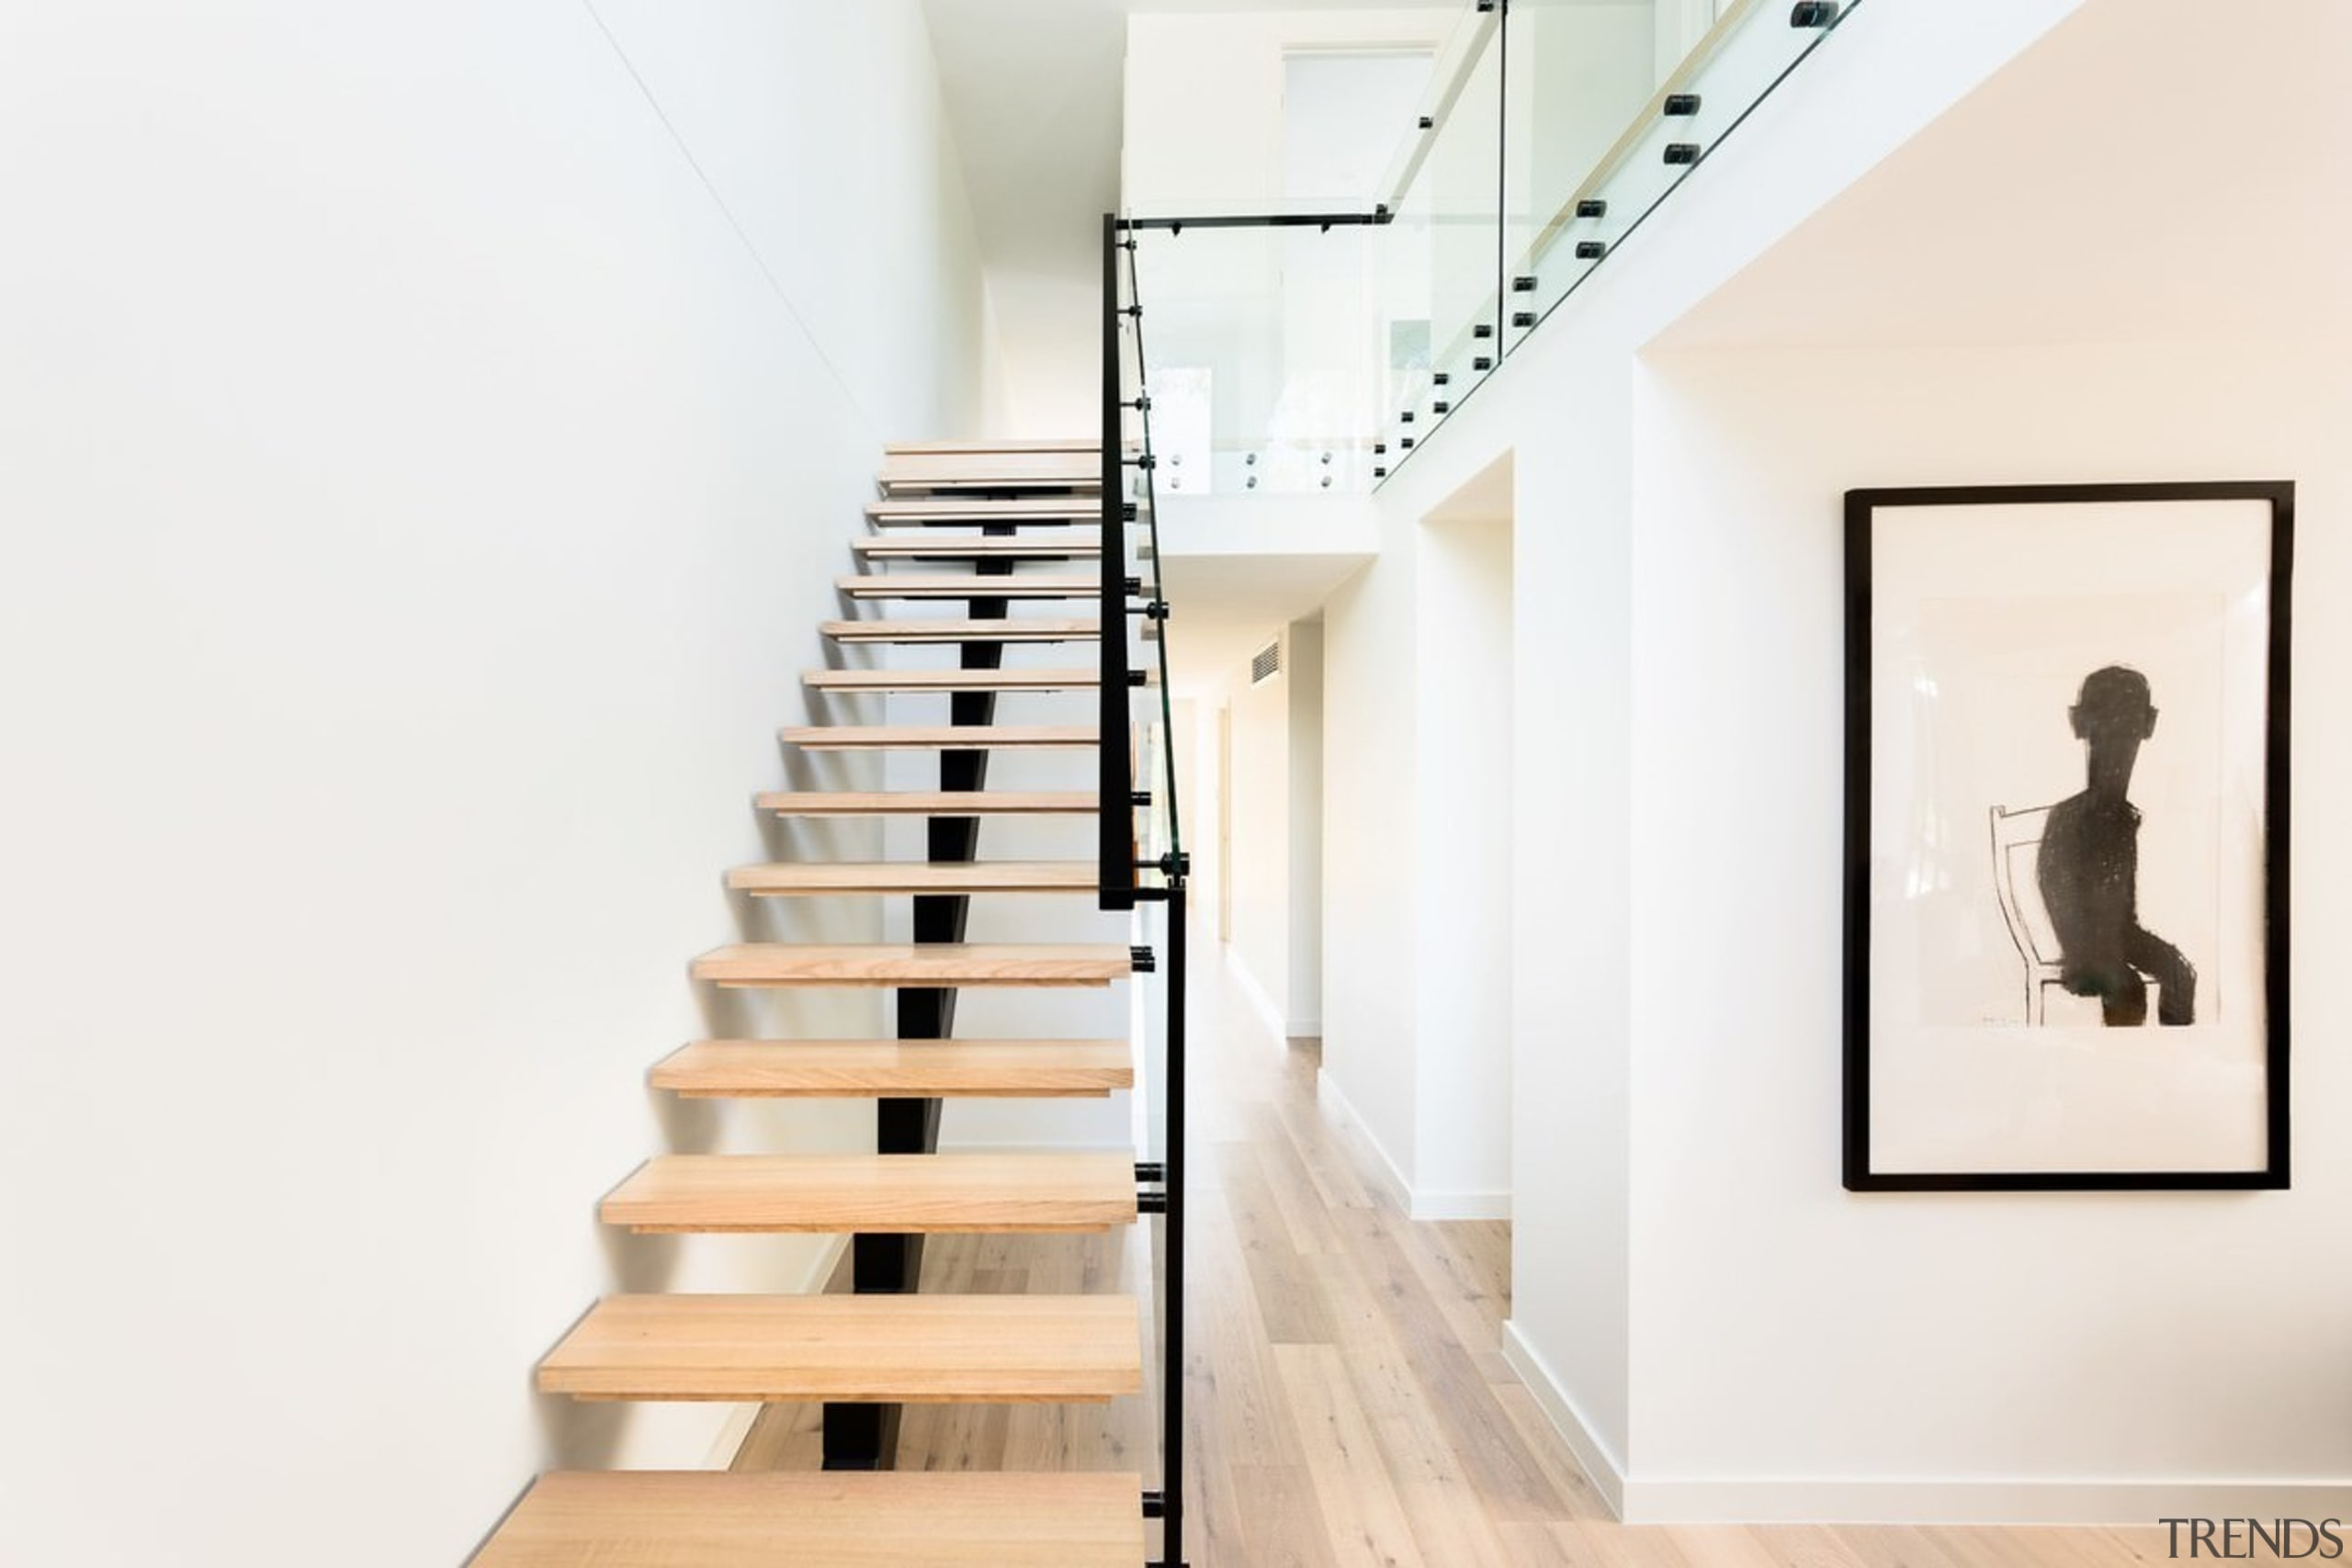 Glass balustrades serve to showcase the staircase - exhibition, handrail, interior design, product design, stairs, white